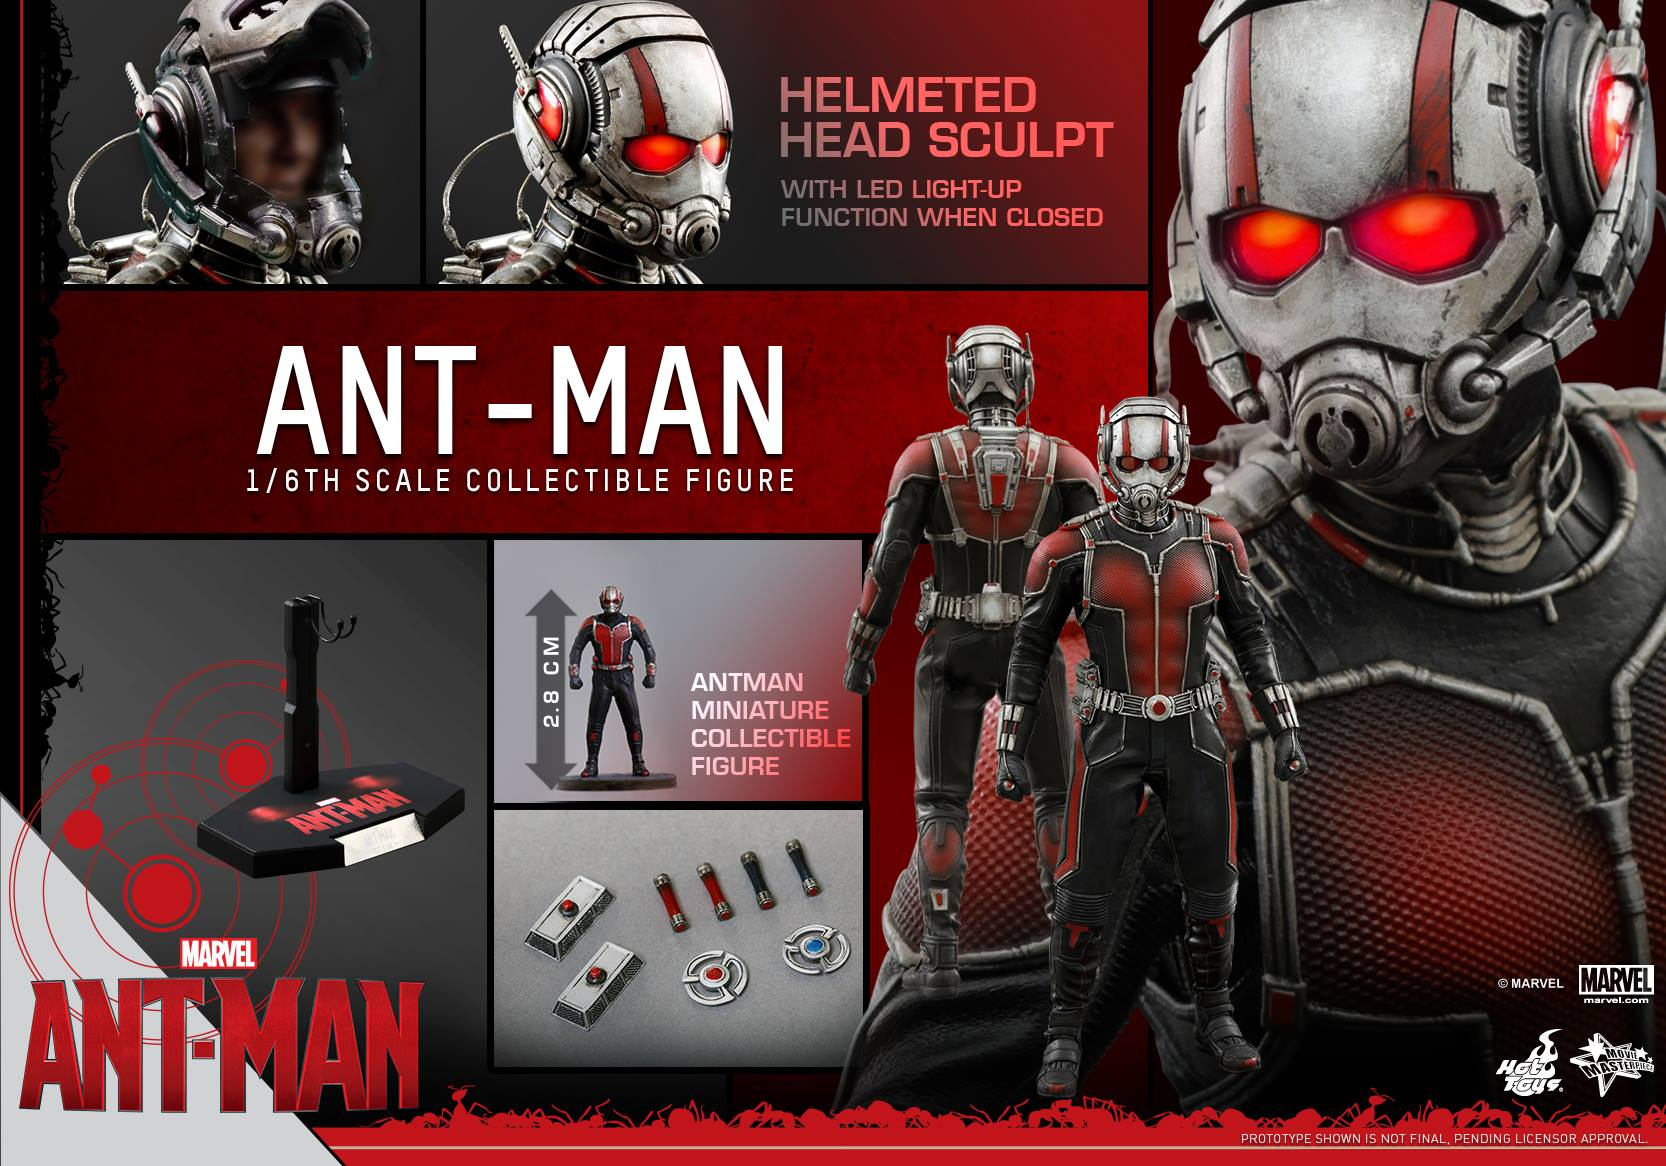 http://marveltoynews.com/wp-content/uploads/2015/07/Hot-Toys-Ant-Man-Sixth-Scale-Figure-and-Accessories.jpg